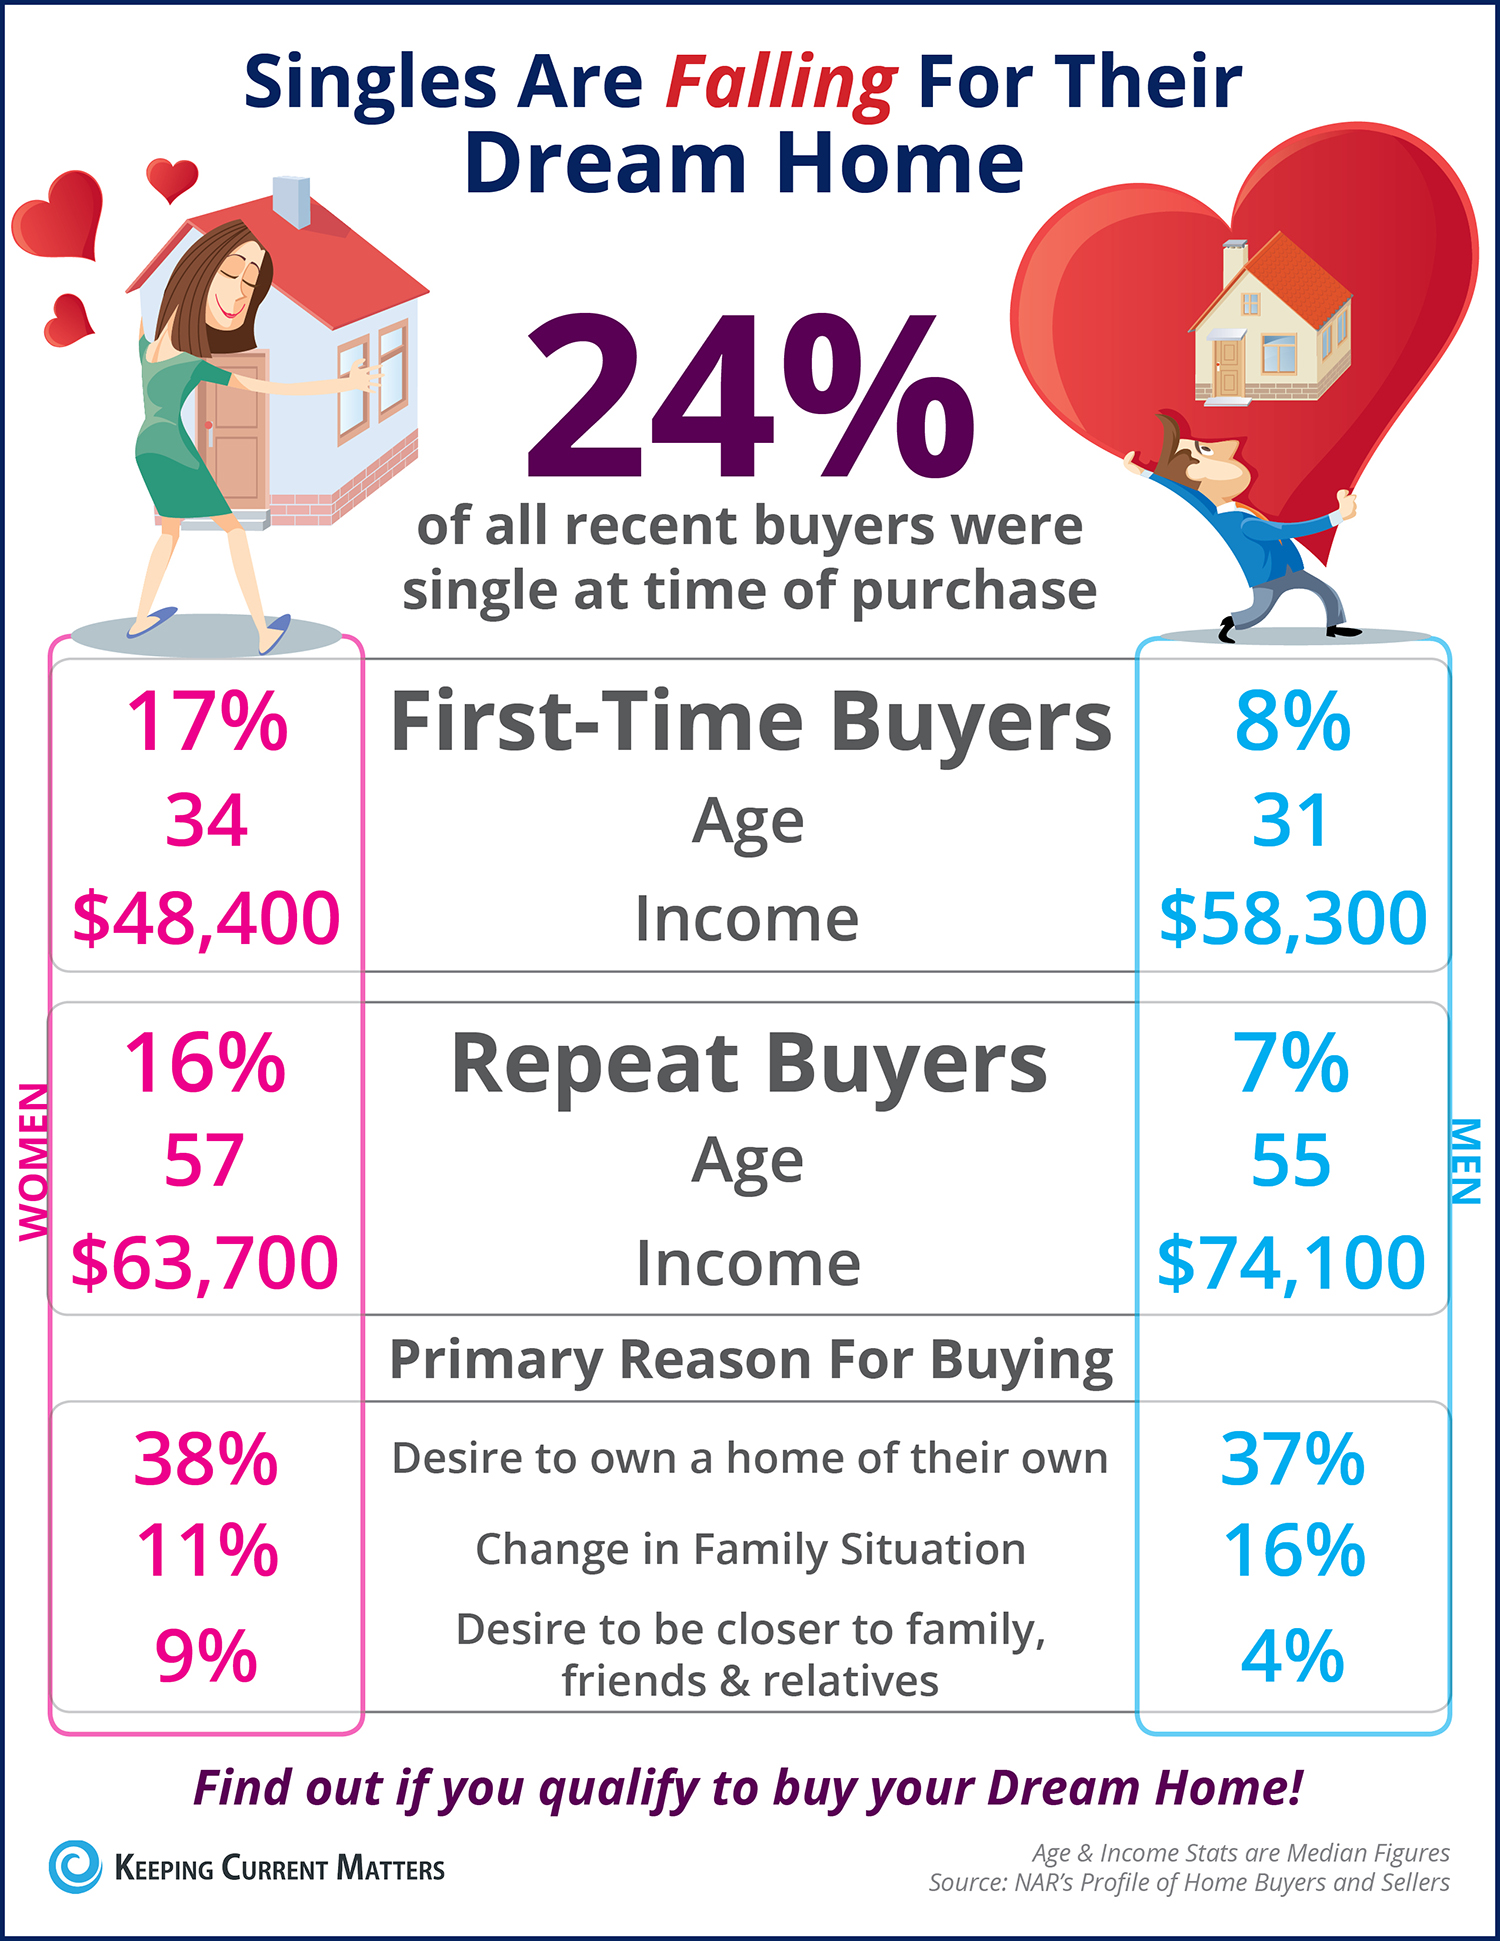 Singles Are Falling for Their Dream Home First [INFOGRAPHIC] | Keeping Current Matters